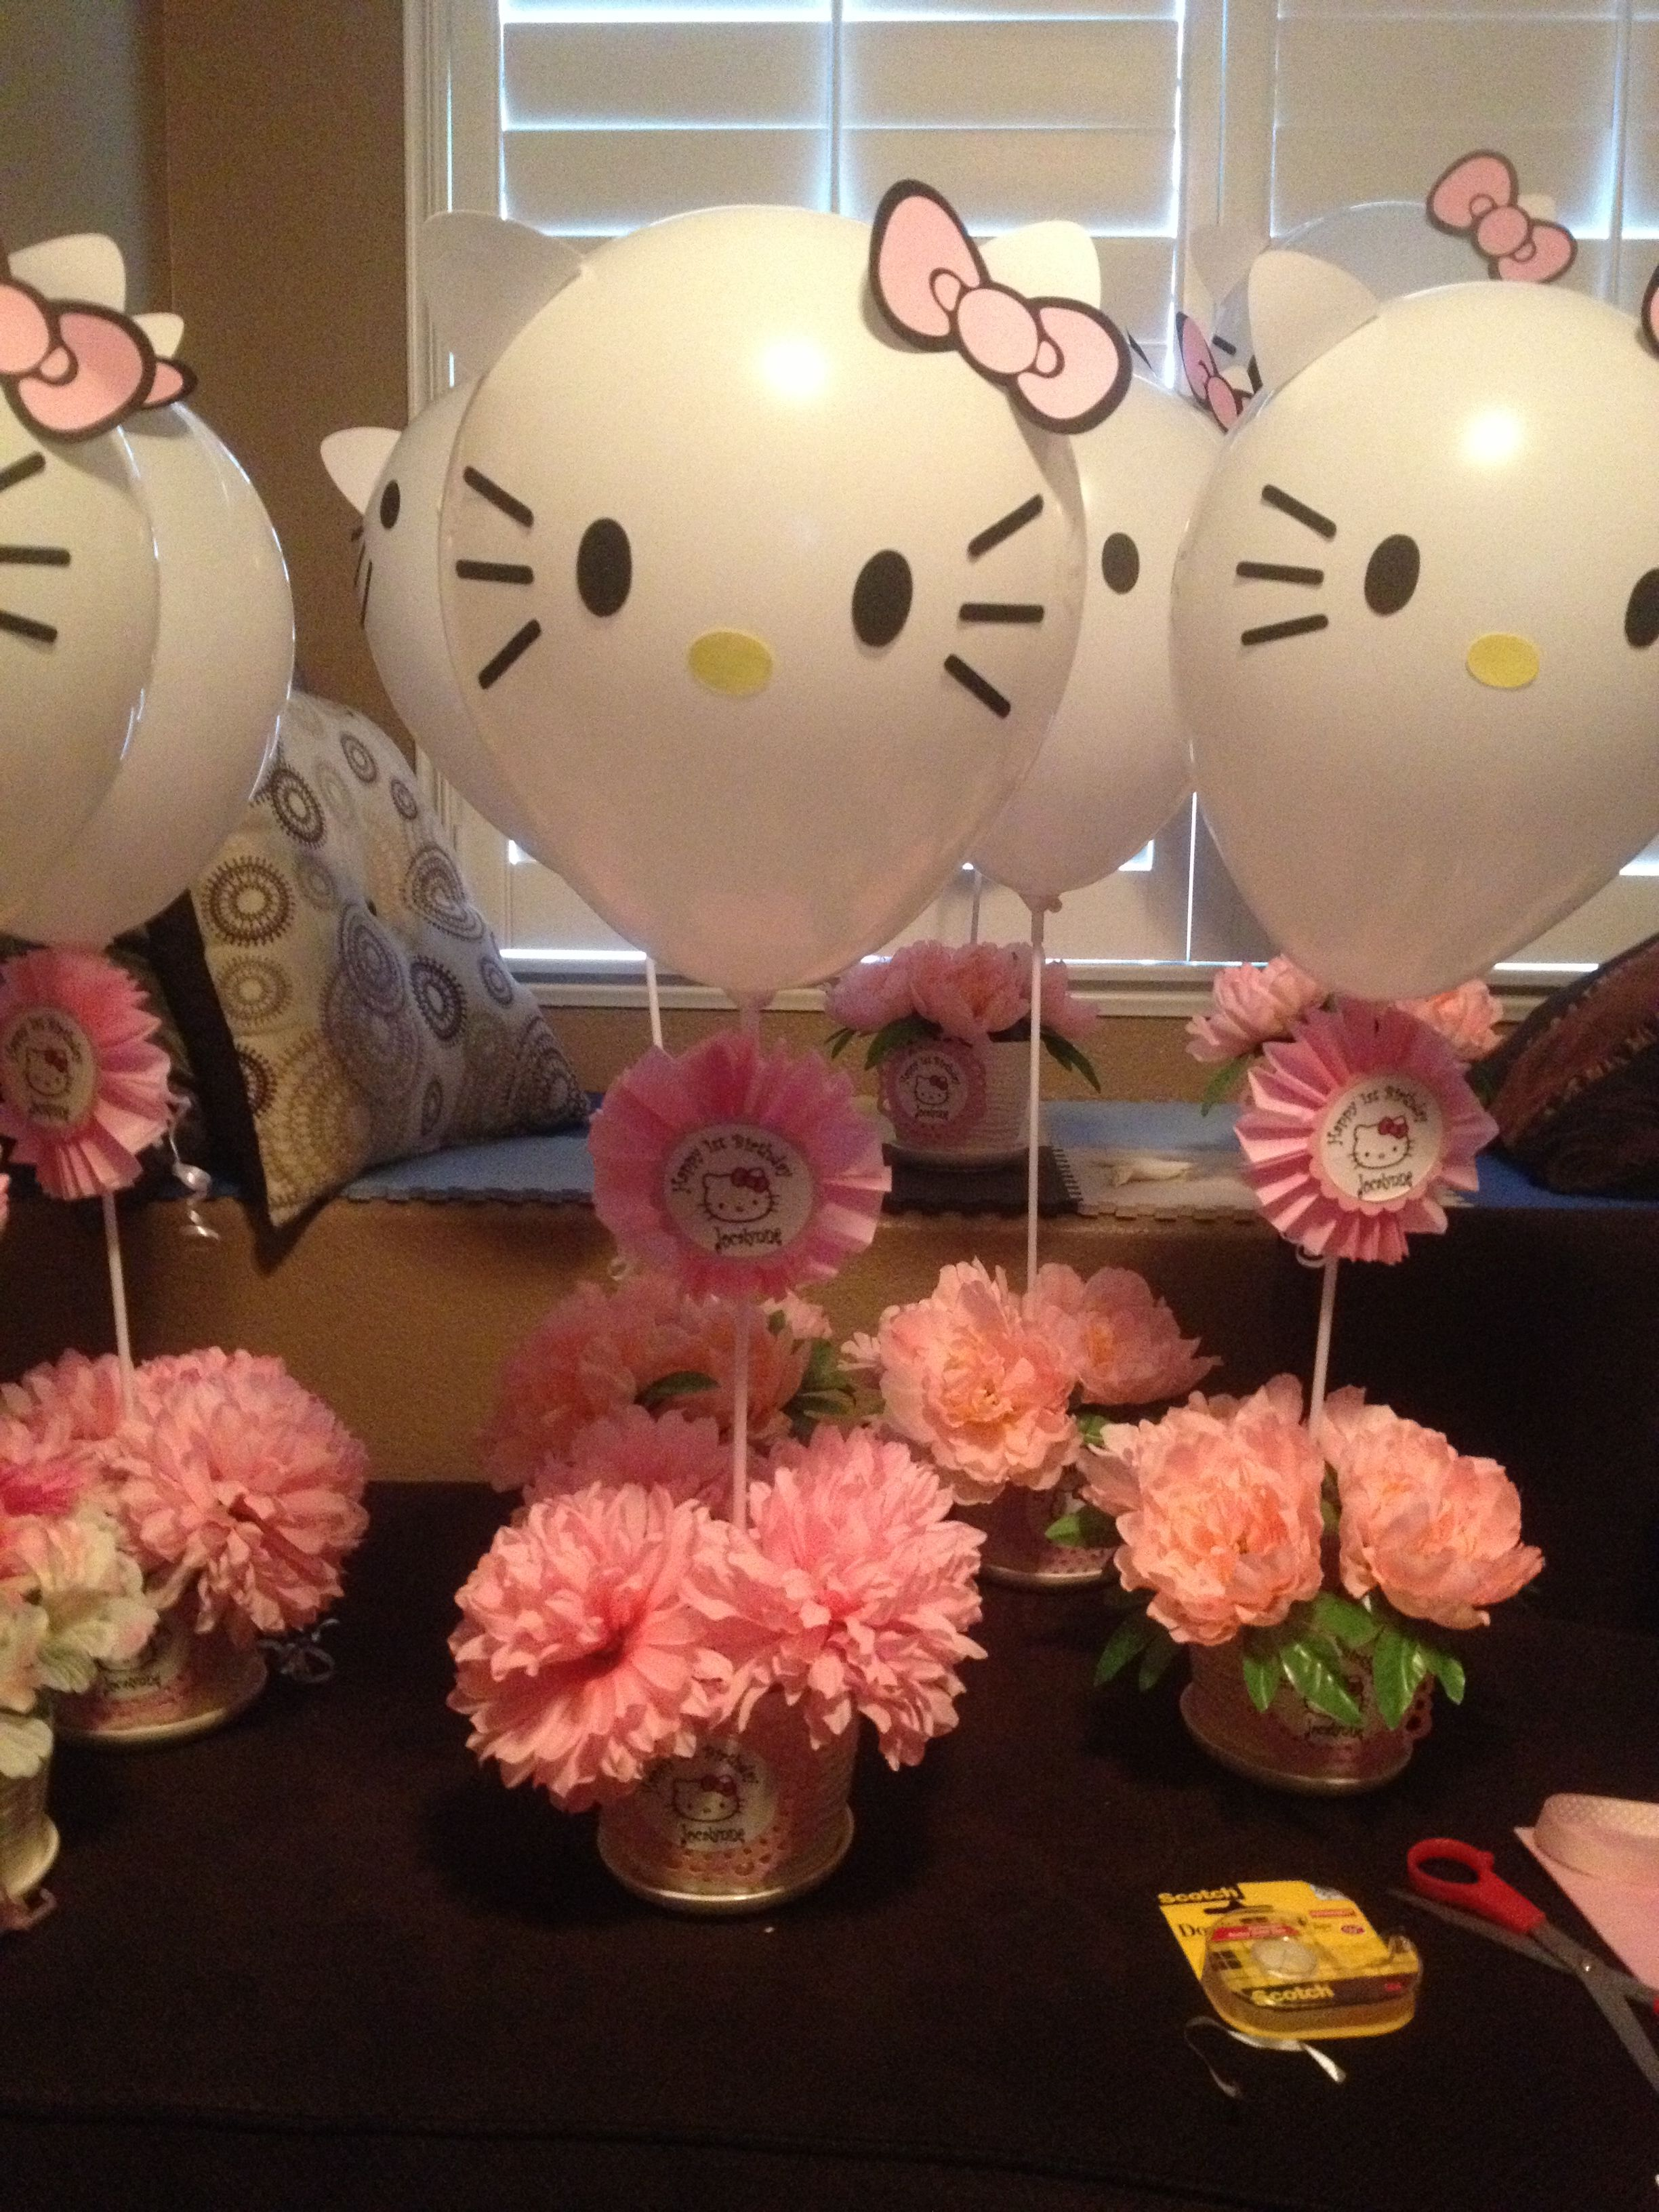 Hello Kitty Baby Shower Decorations : hello, kitty, shower, decorations, María, Florencia, Lottero, Kitty, Lovers, Hello, Centerpieces,, Birthday, Party,, Theme, Party